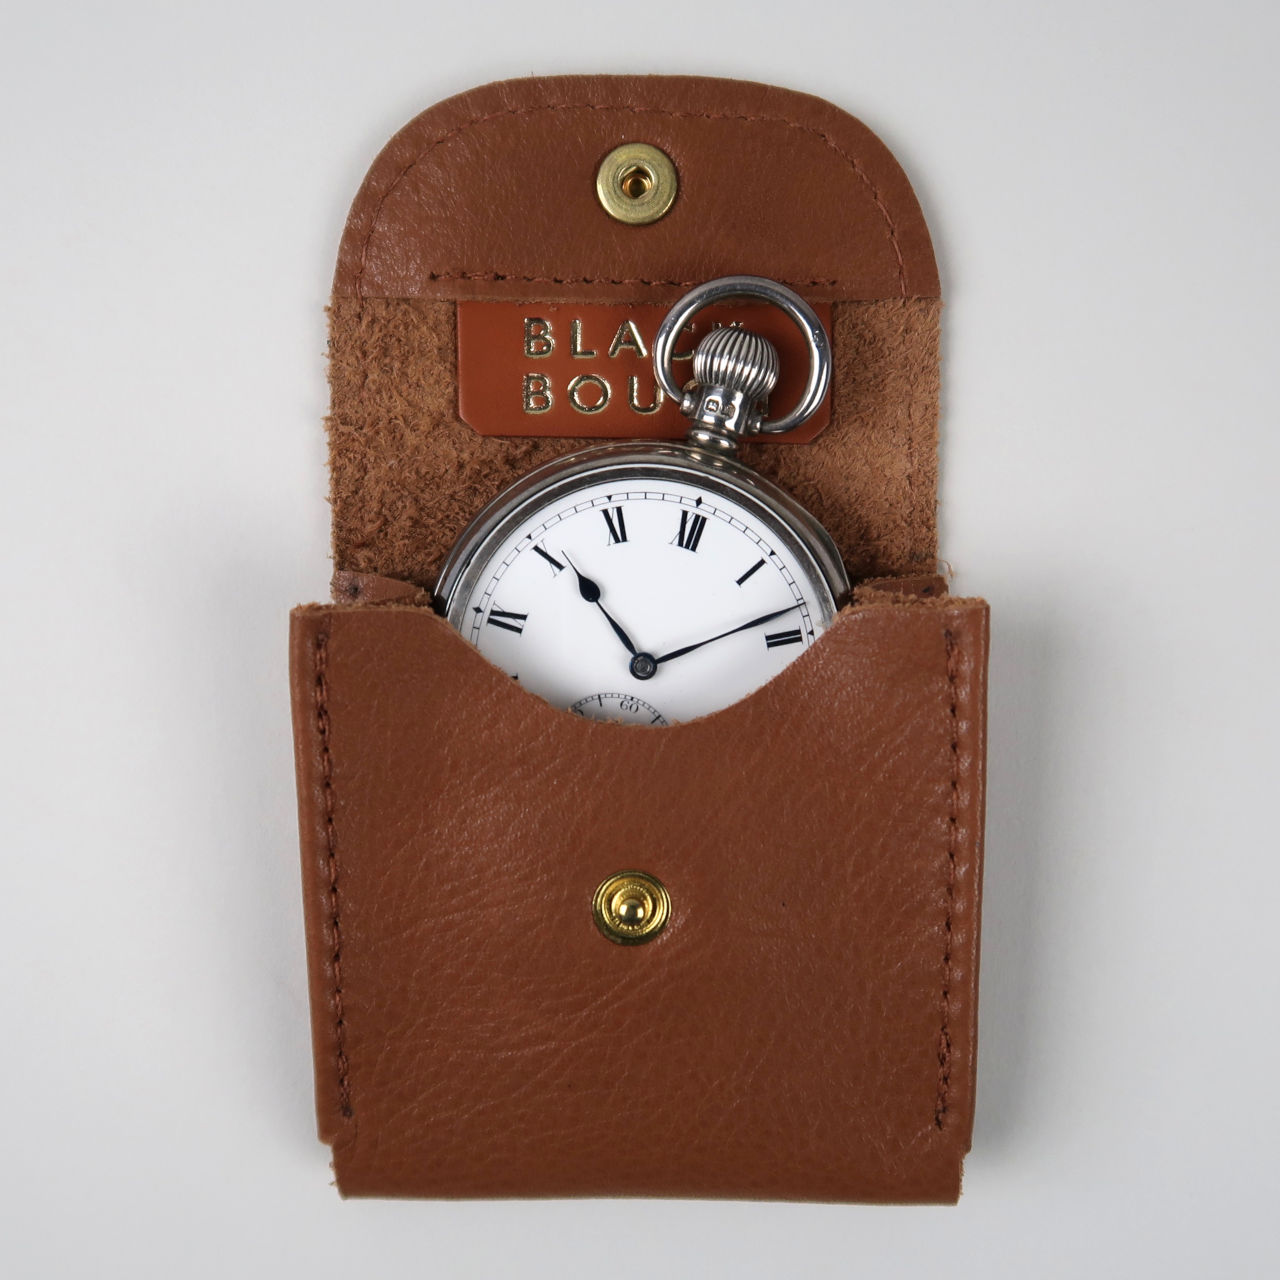 Tan leather pocket watch pouch